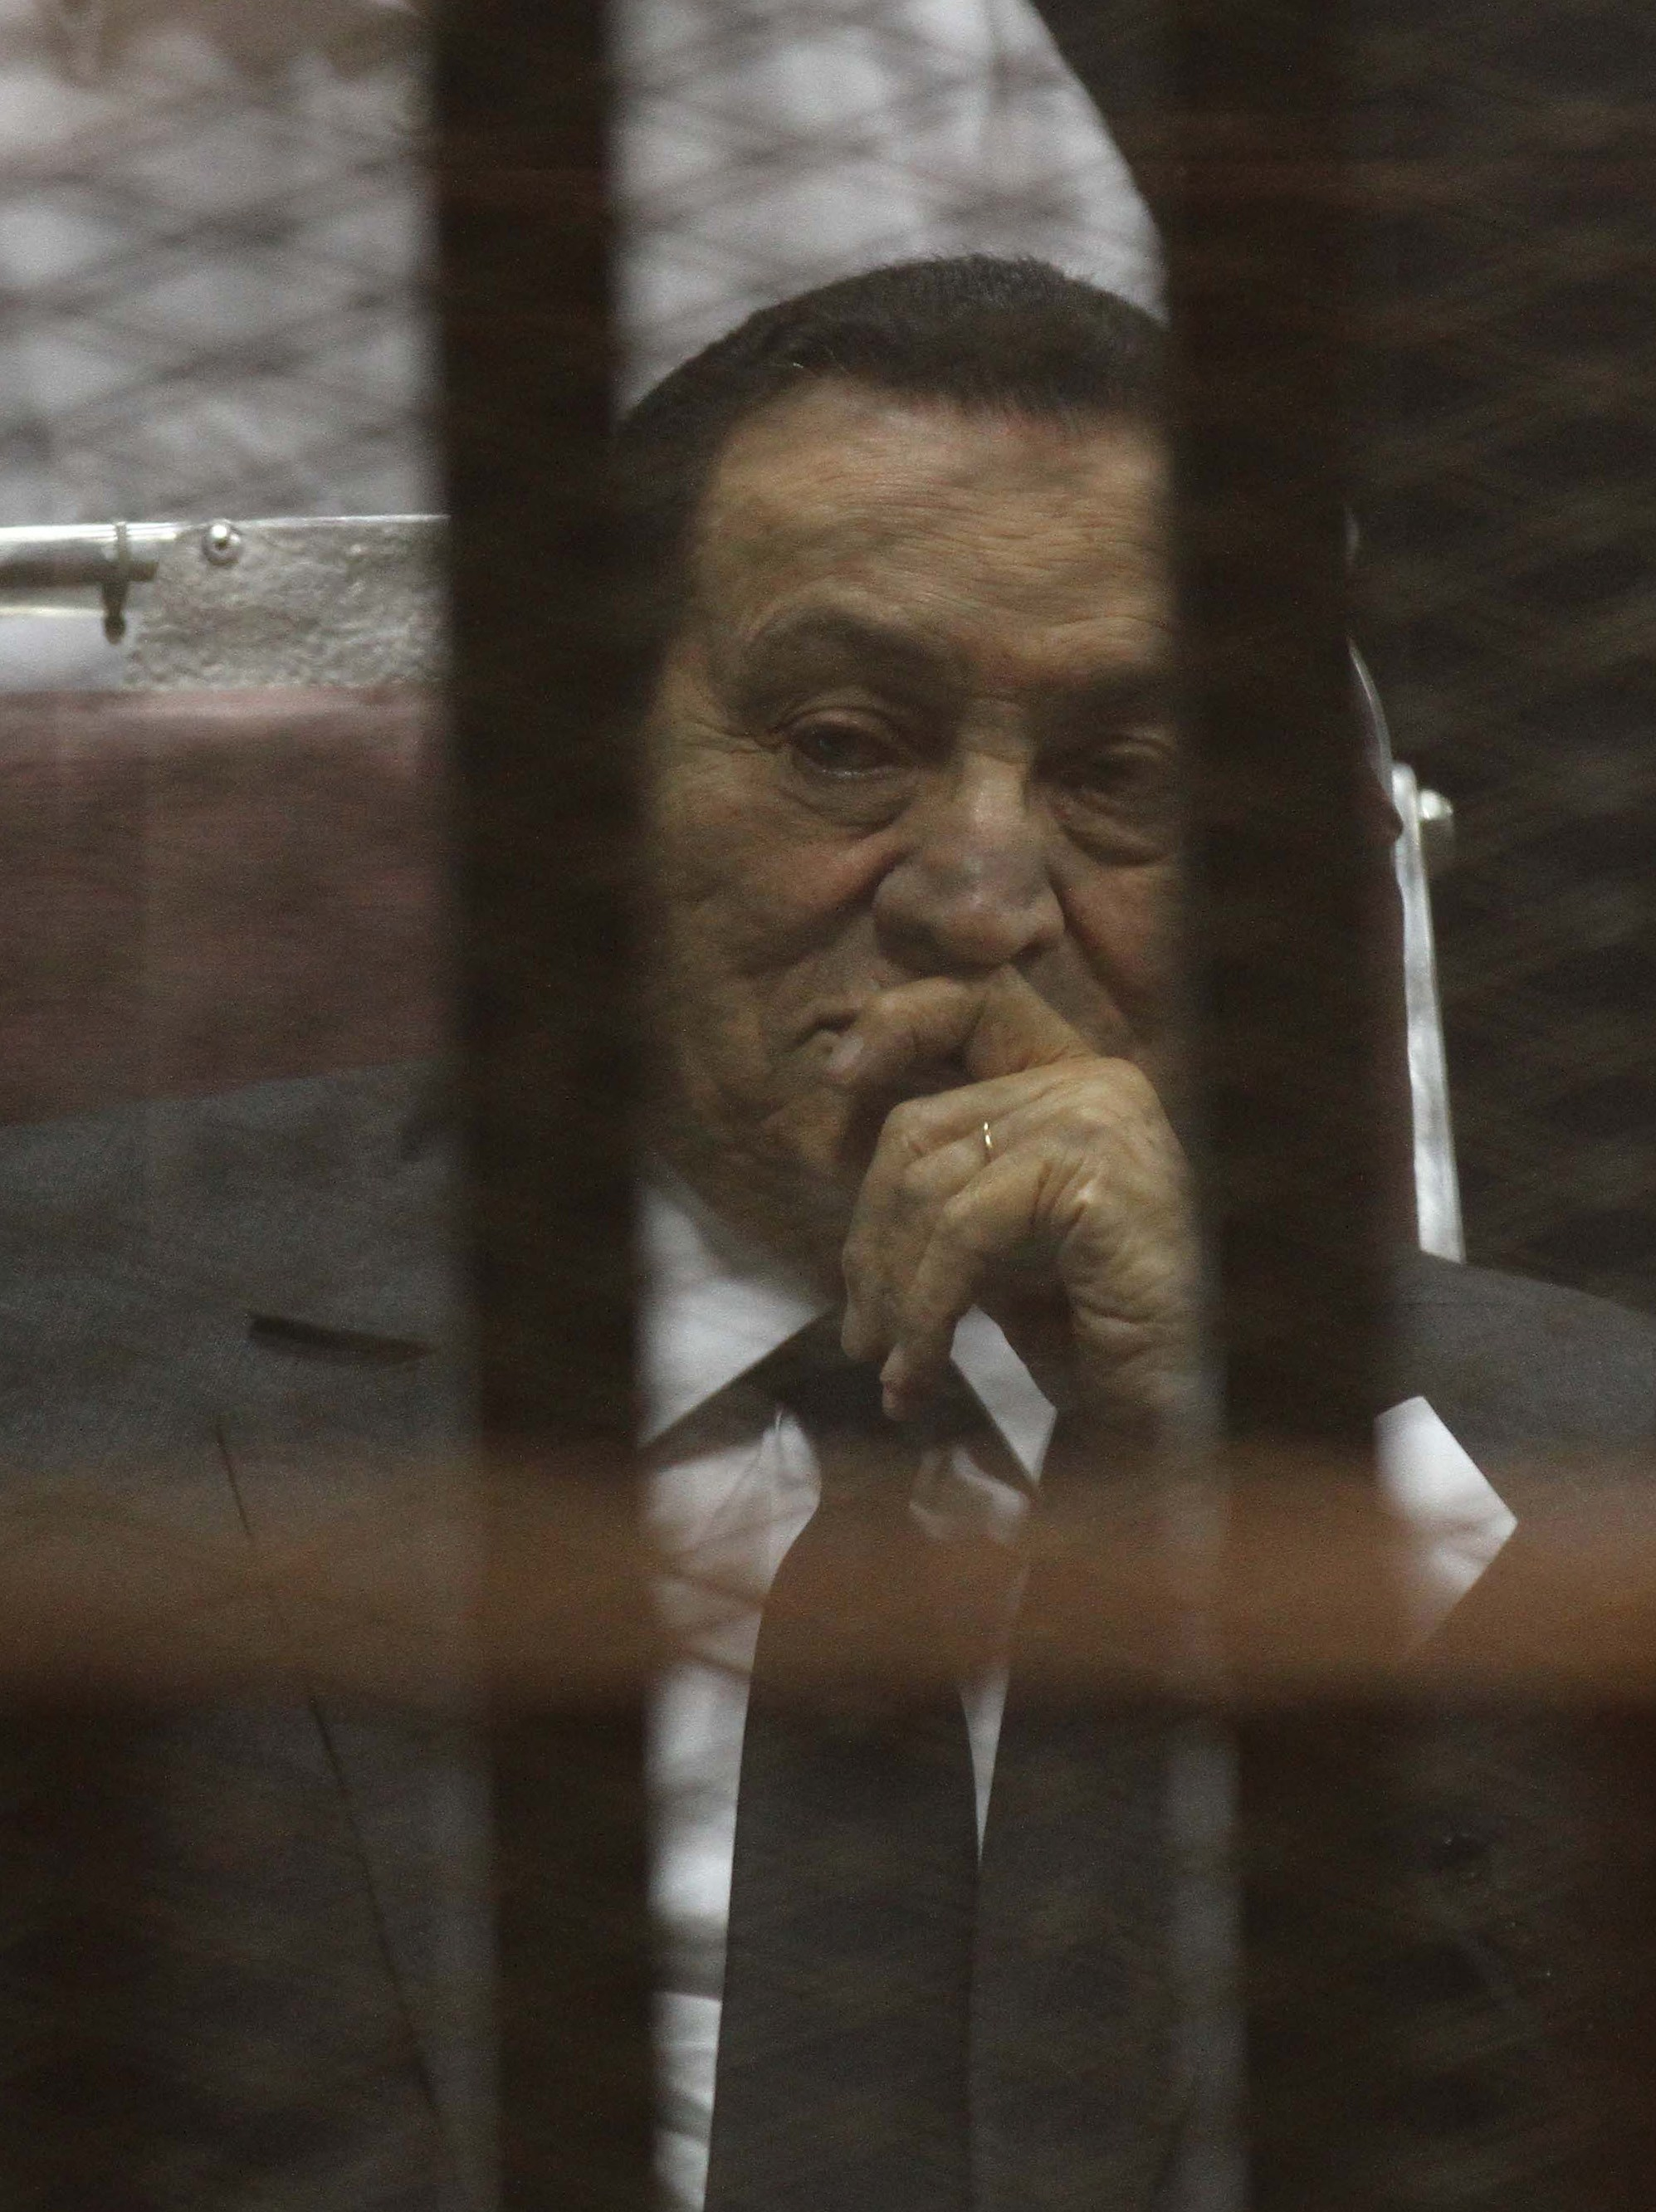 Egypt's deposed president Hosni Mubarak looks on from behind the accused cage during a trial session, earlier in 2014 in Cairo.  (AFP PHOTO / HASSAN MOHAMED)